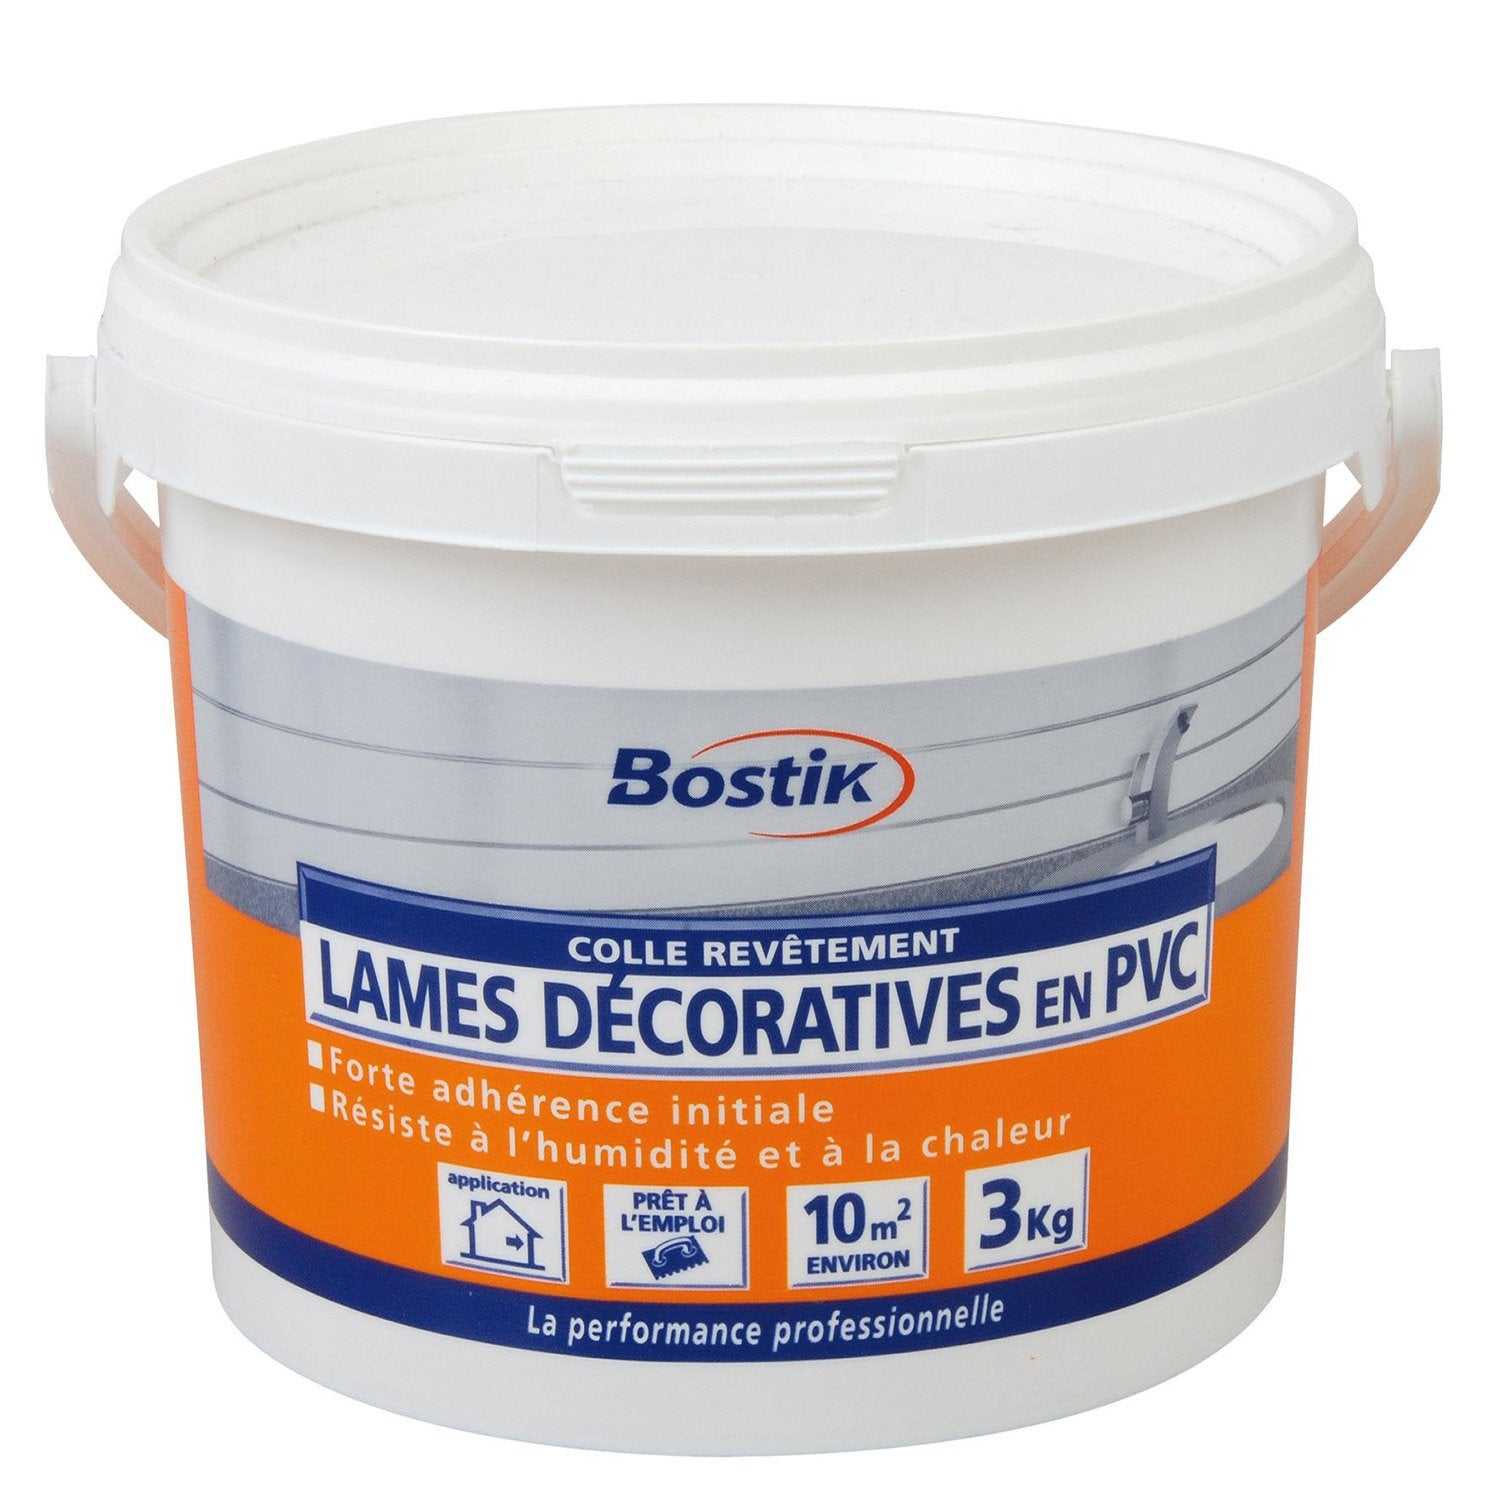 colle pour lambris pvc bostik 3 kg leroy merlin